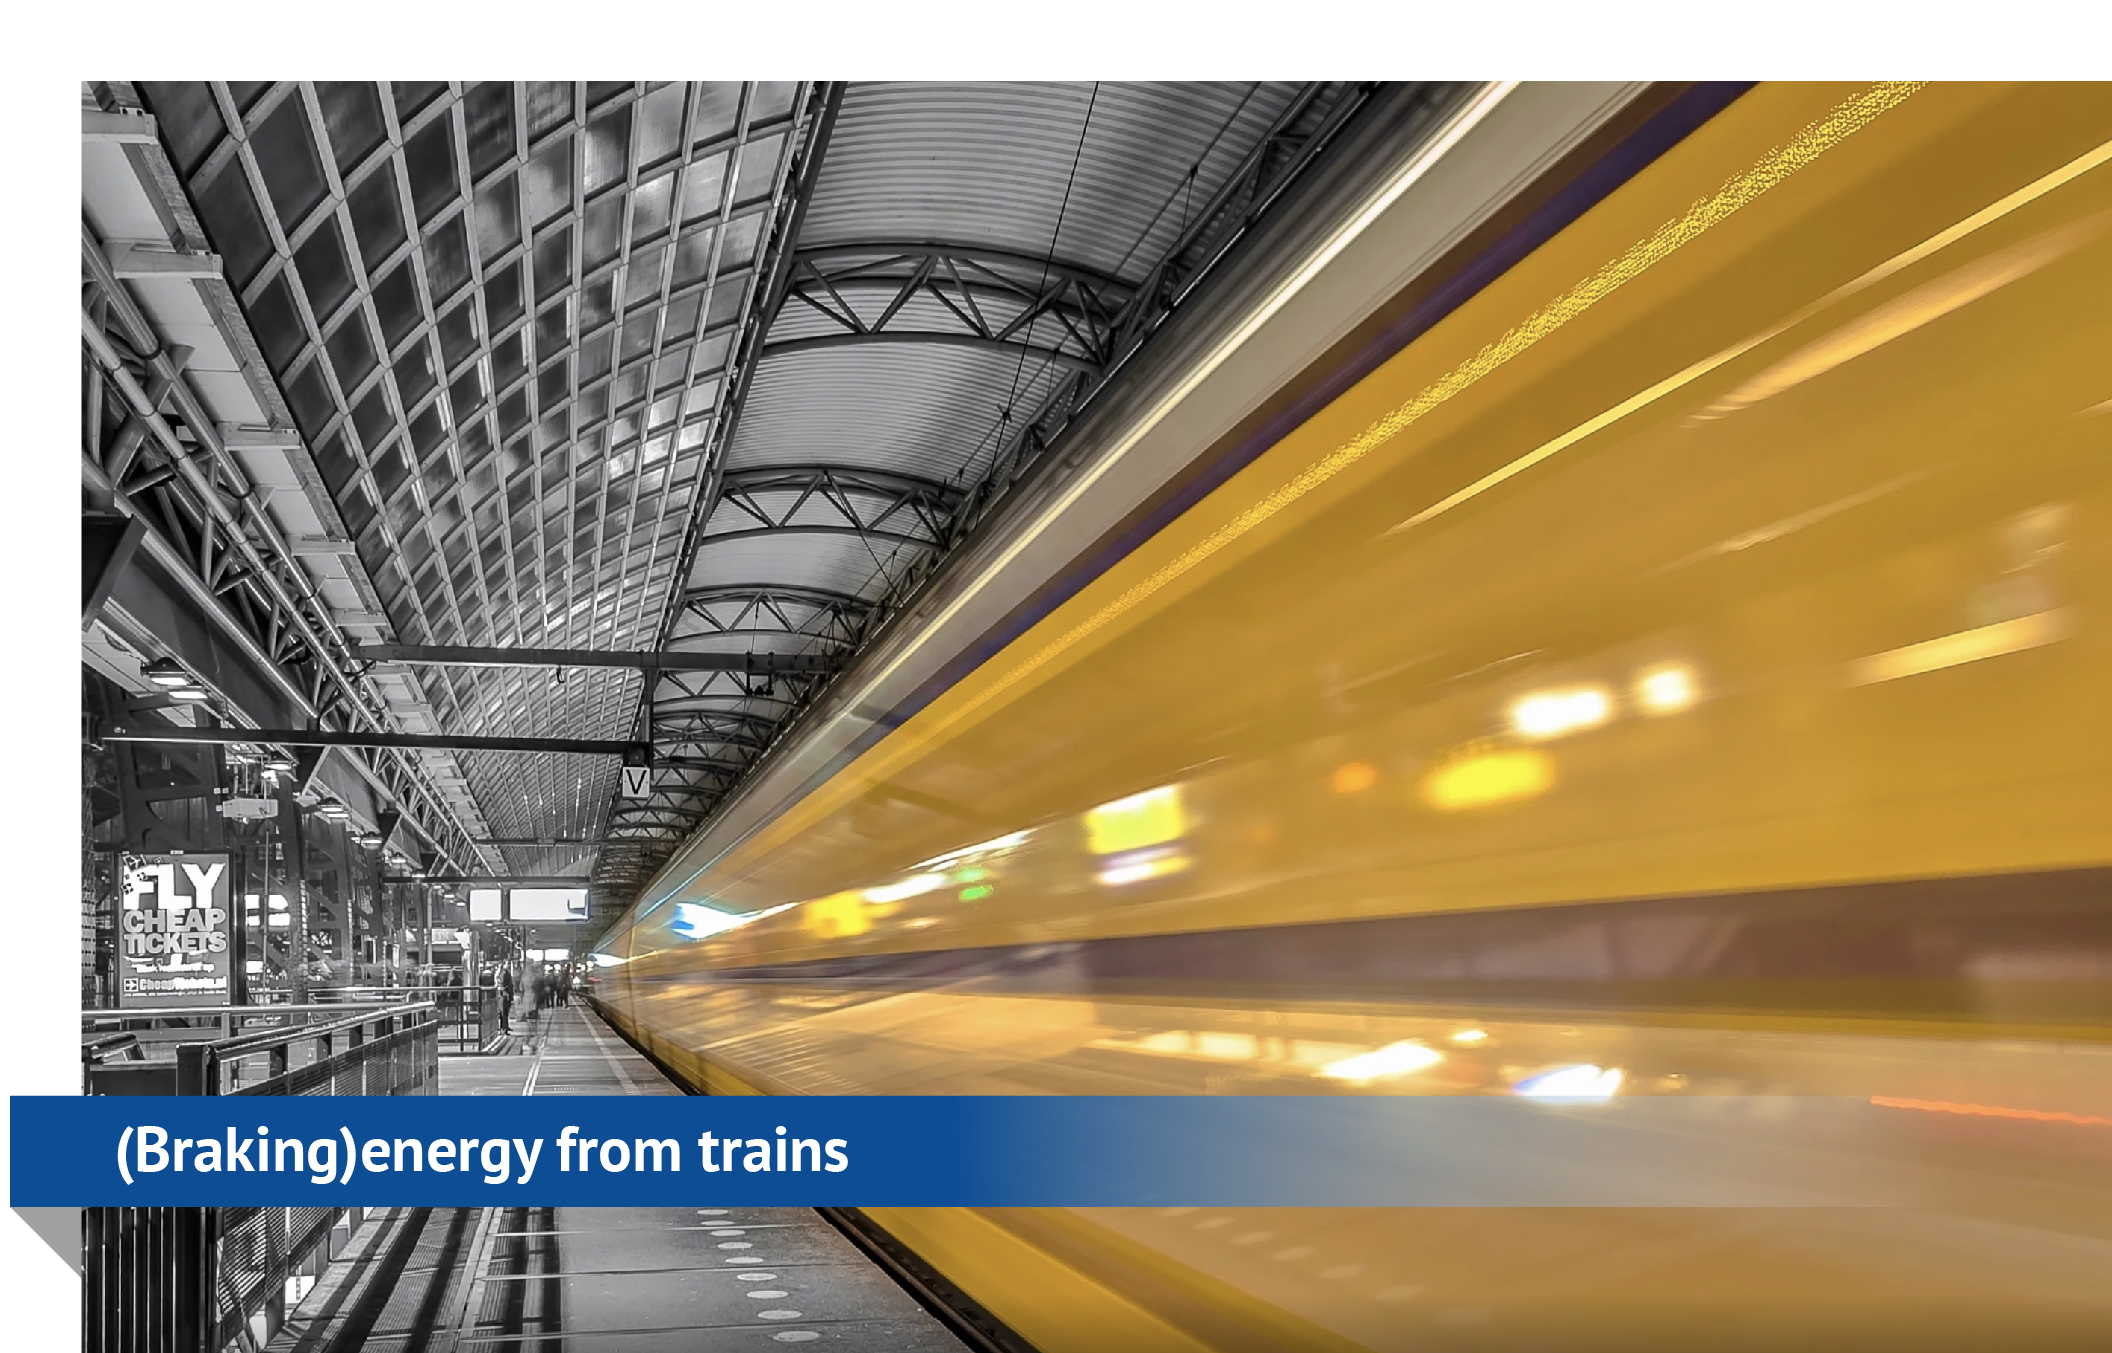 Braking energy from trains, metro's and trams - Hedgehog Applications